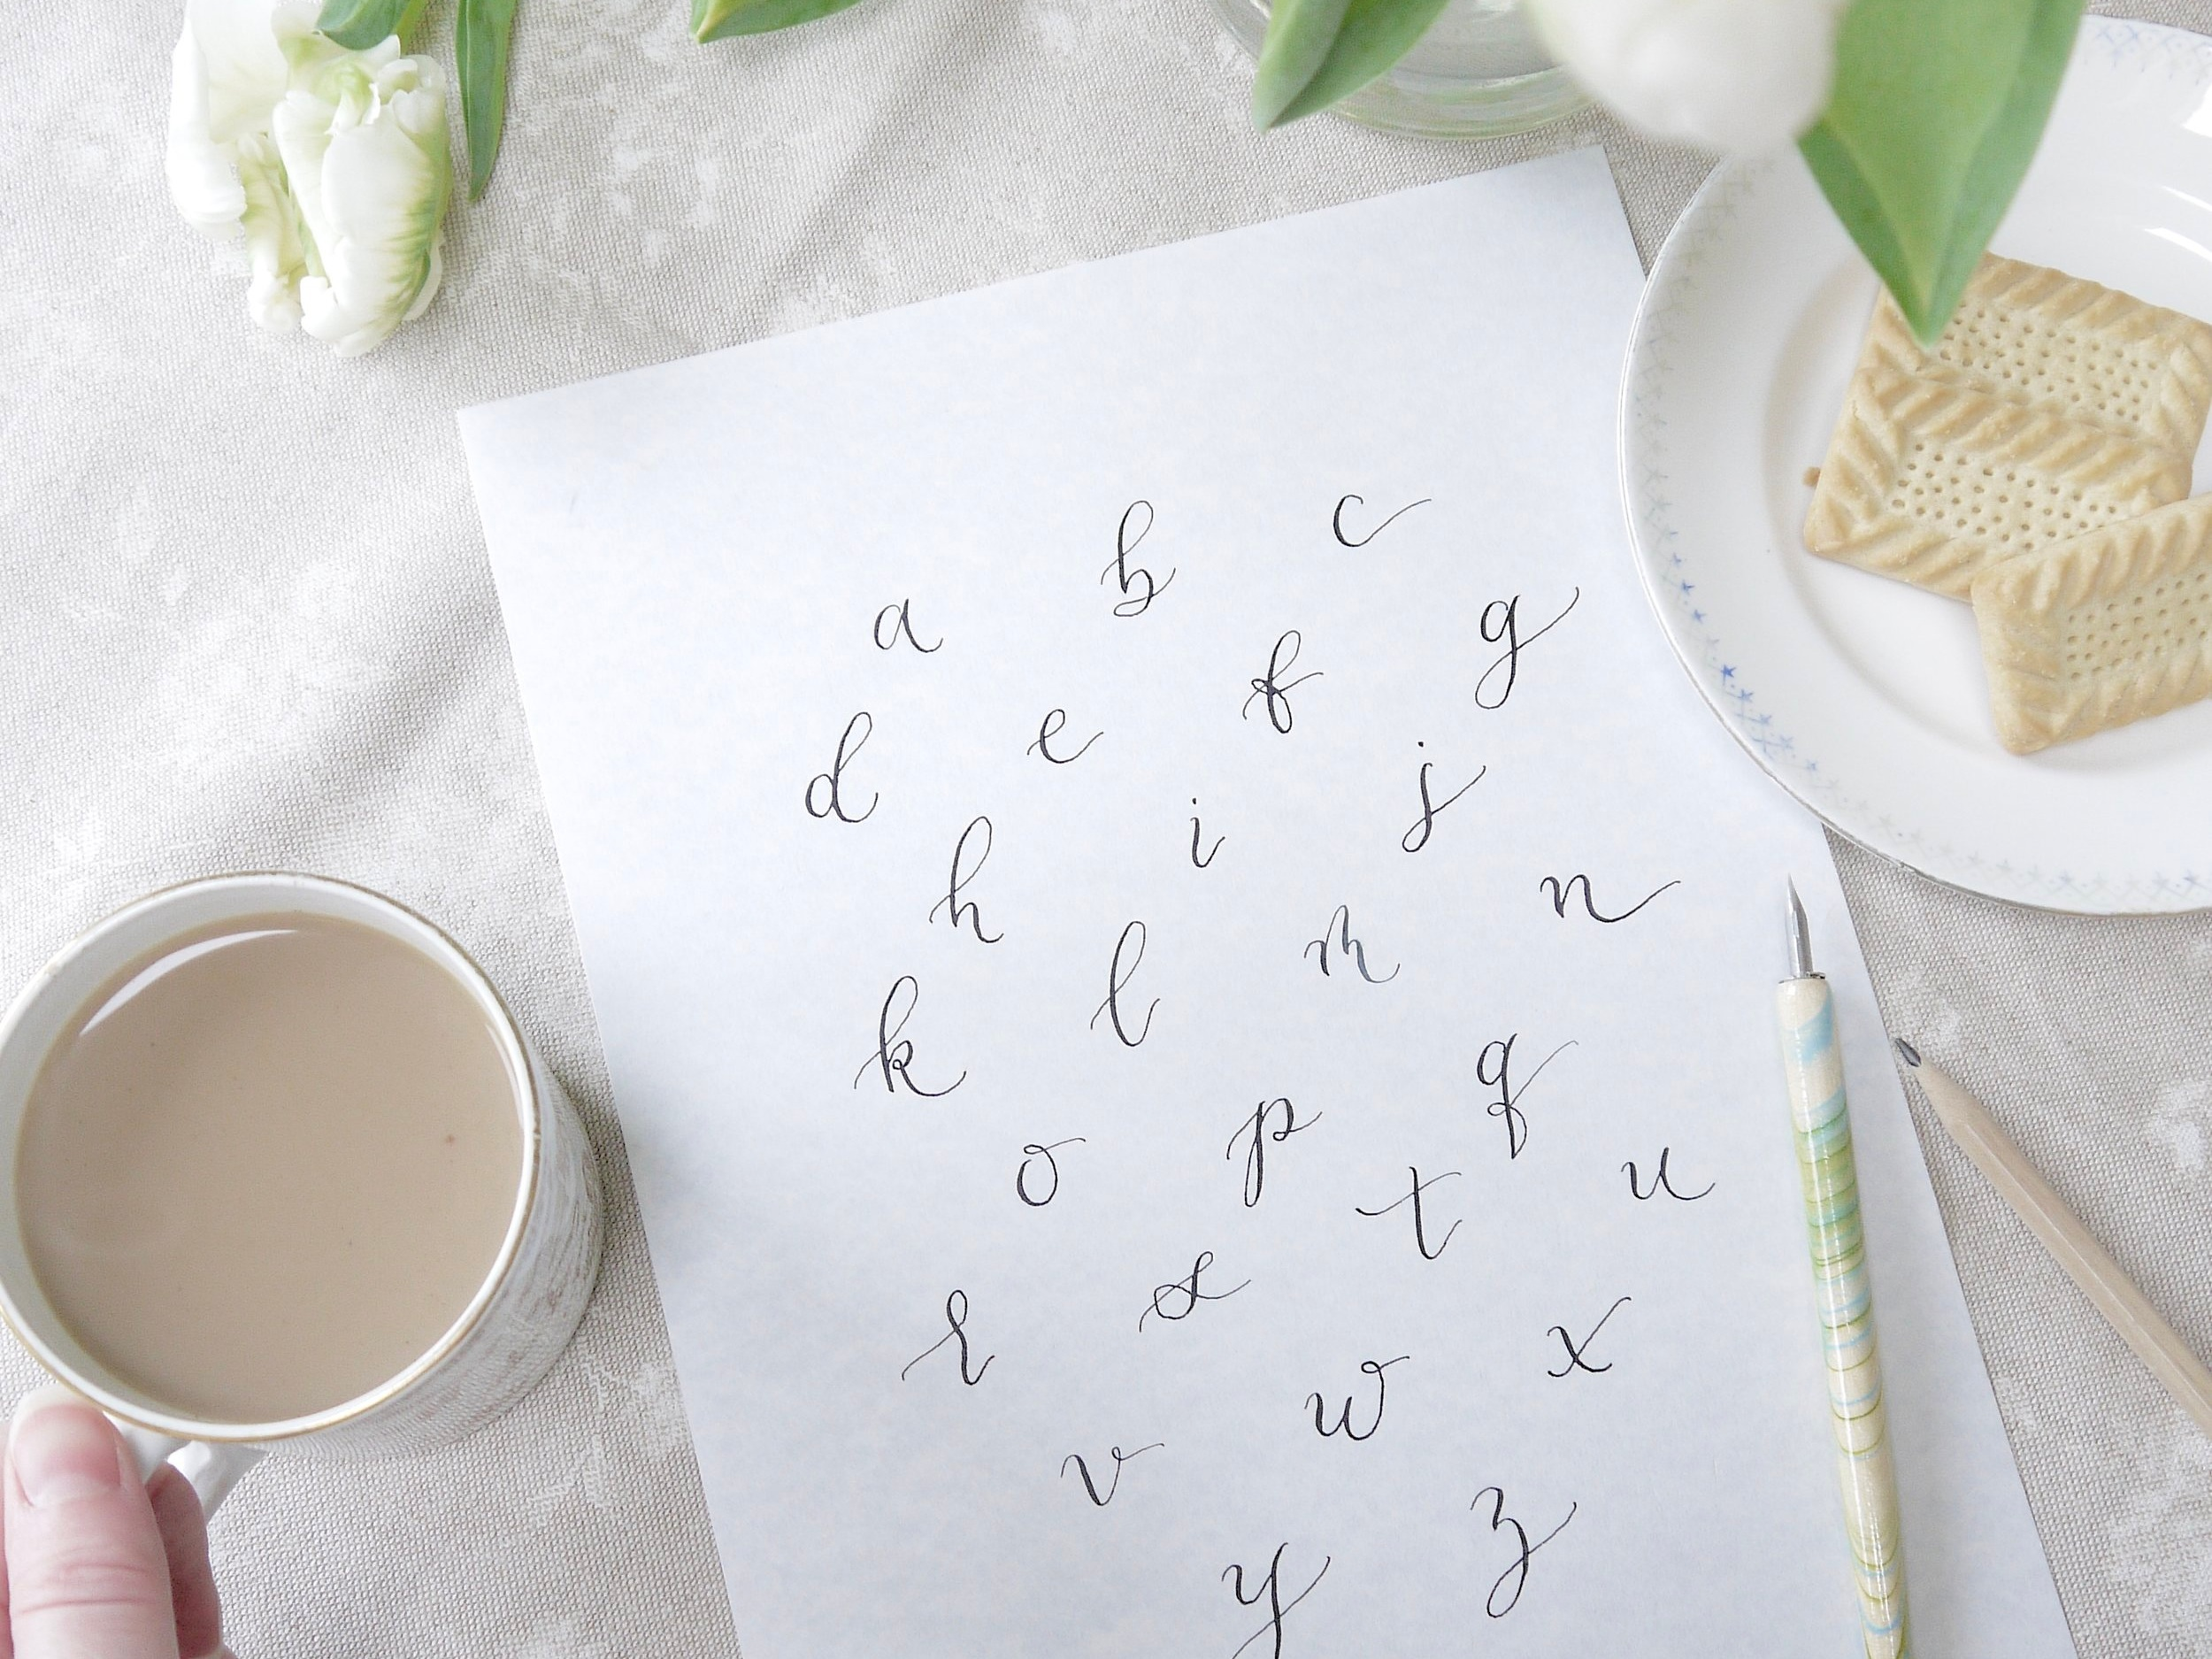 Practicing calligraphy can have calming and therapeutic benefits